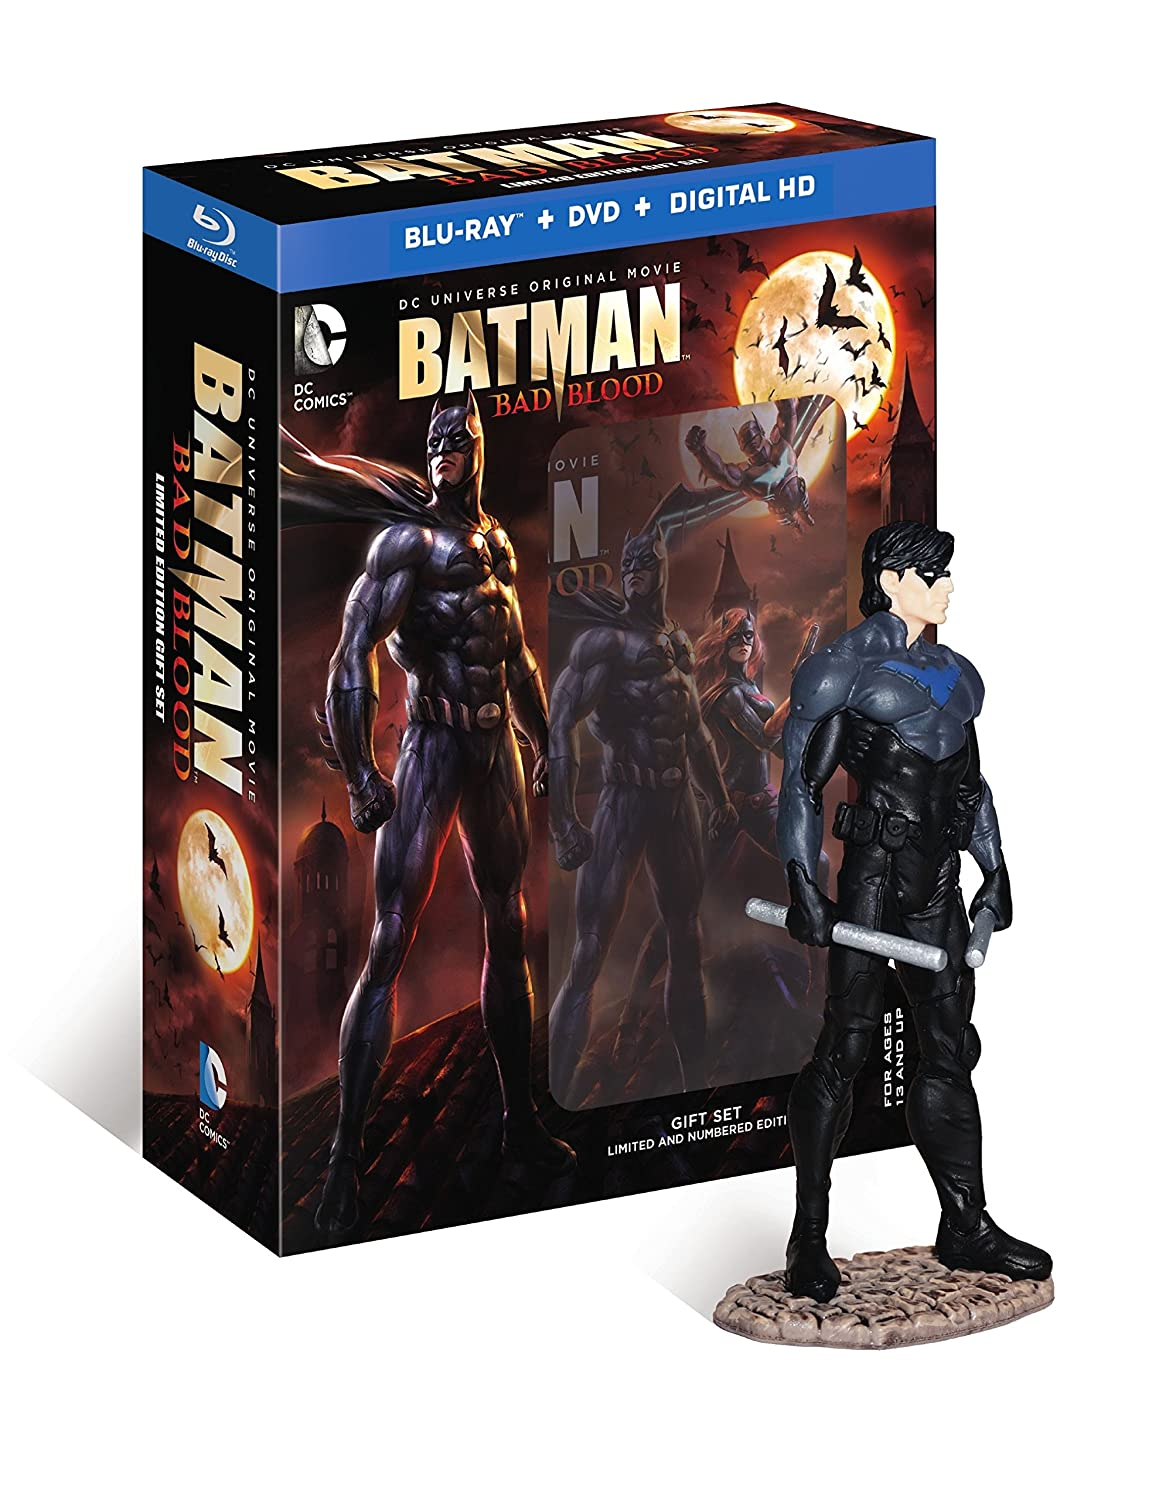 Batman: Bad Blood Edizione: Stati Uniti Italia Blu-ray ...